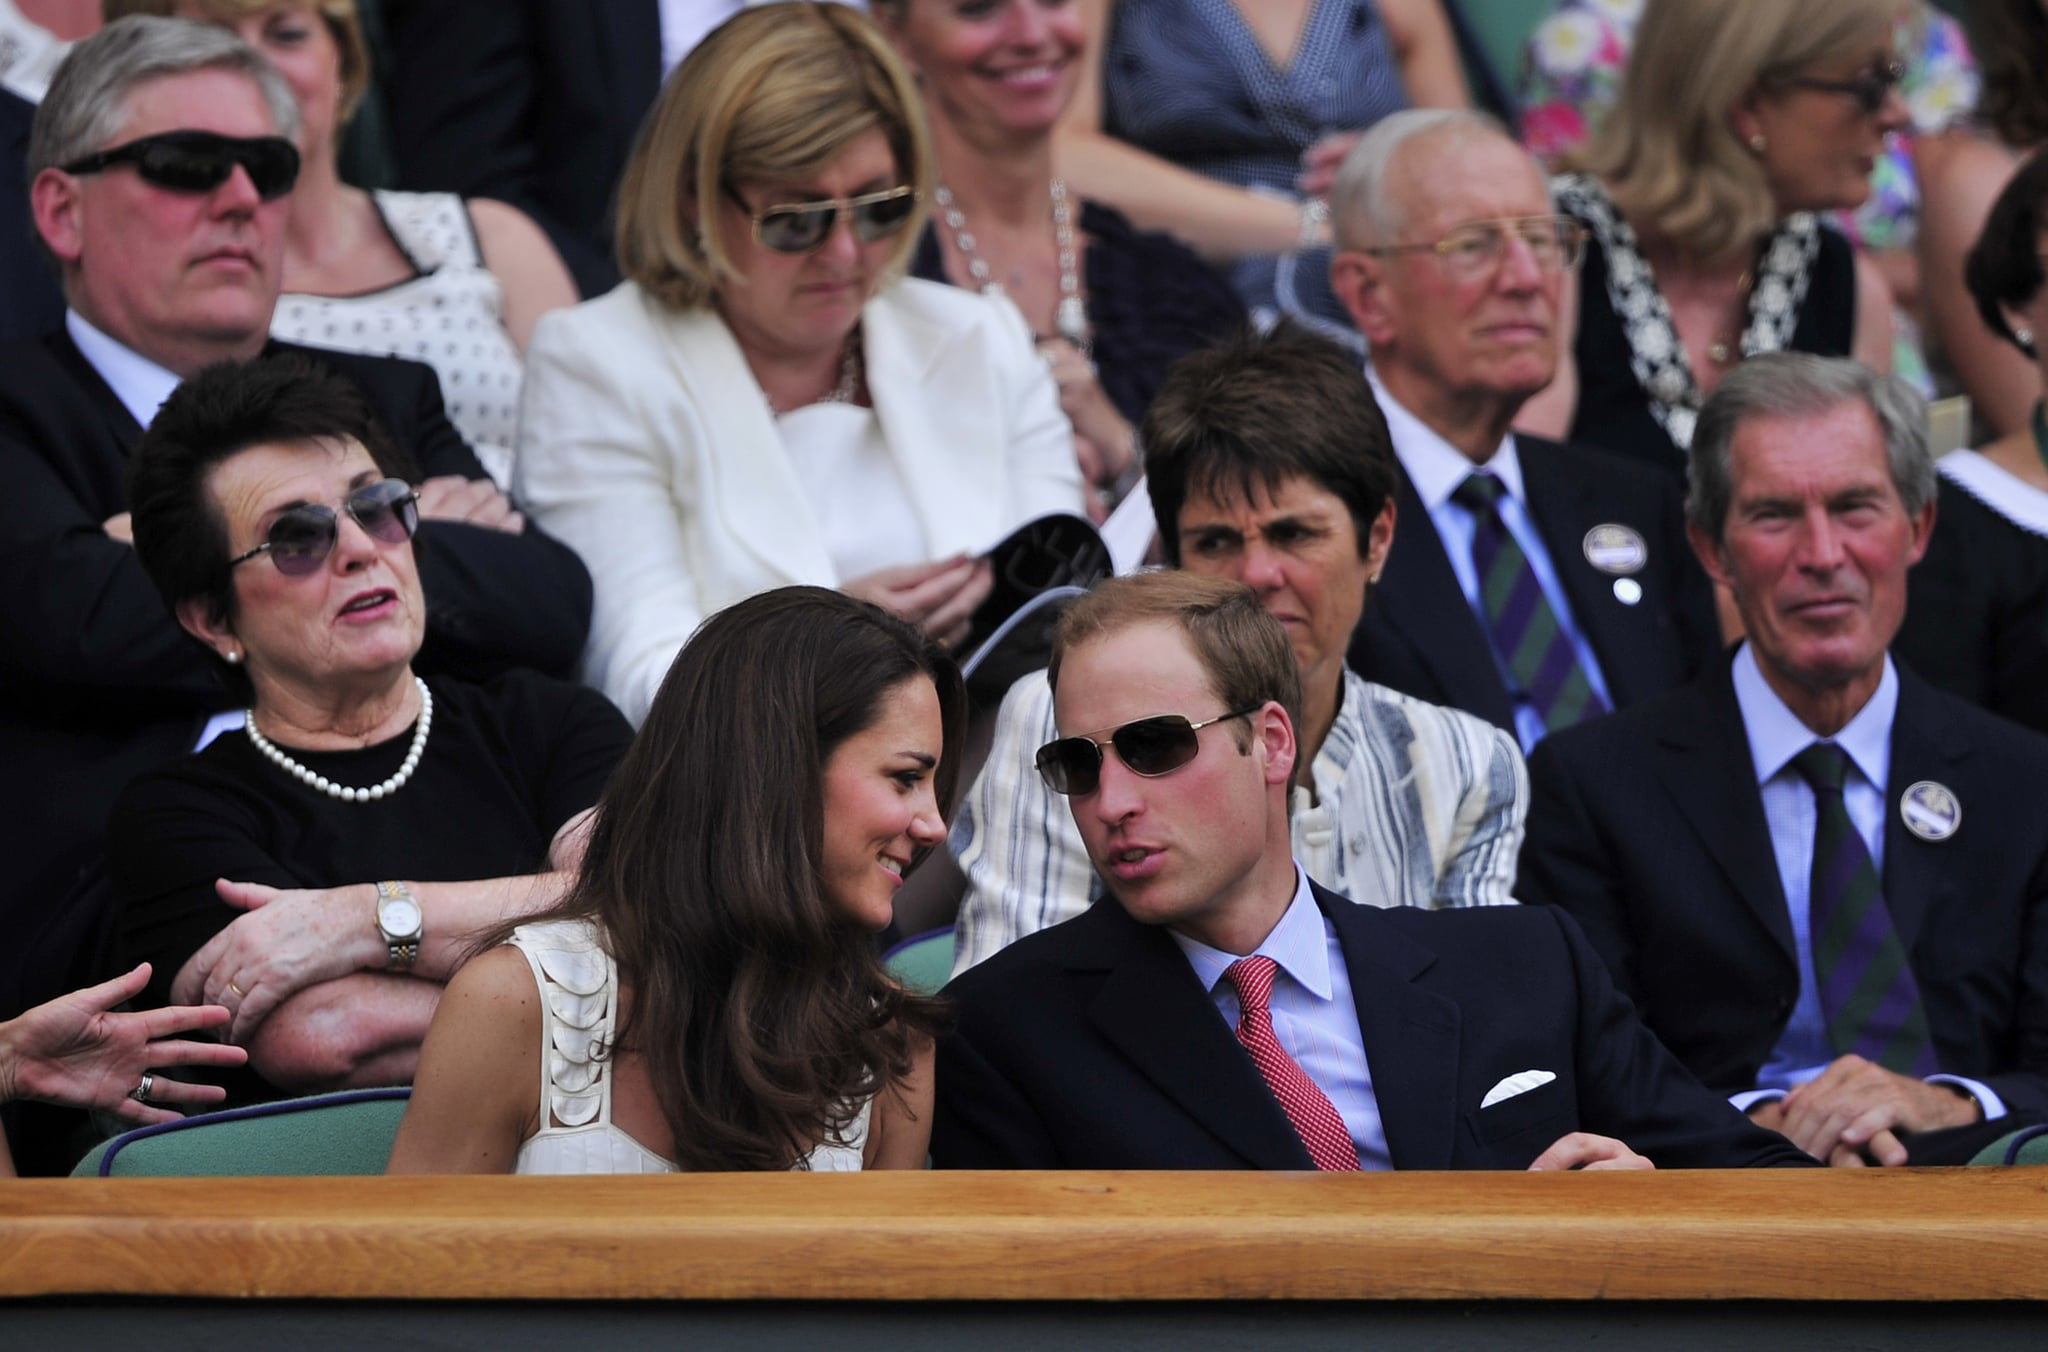 Kate smiled at Will, who looked handsome in sunglasses, as they took in a Wimbledon match in June 2011.